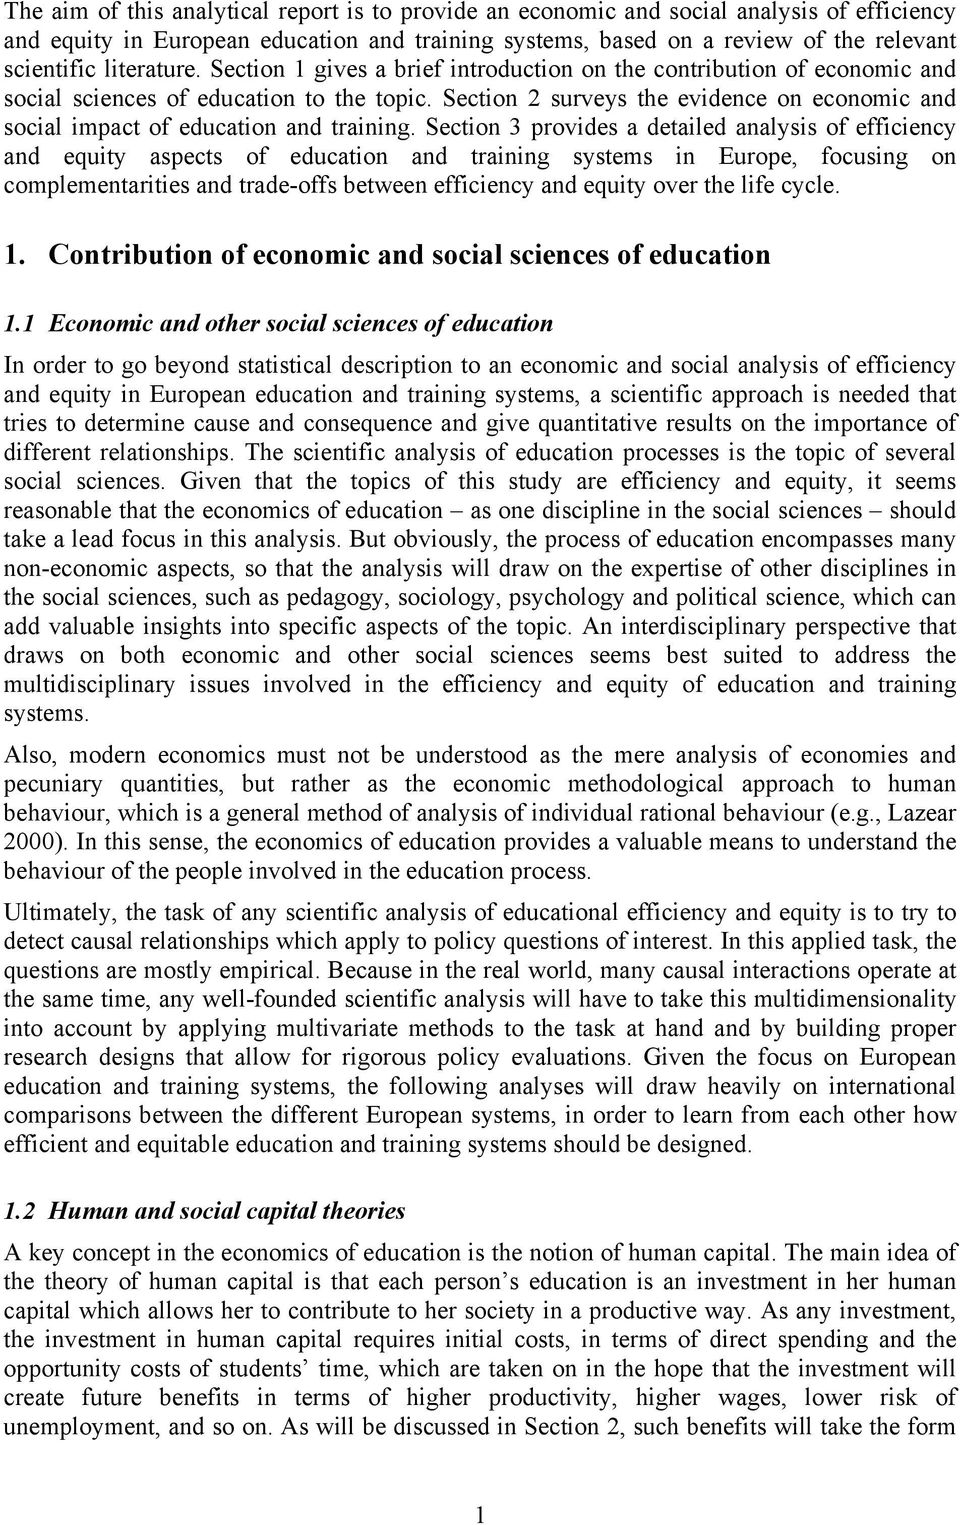 Section 2 surveys the evidence on economic and social impact of education and training.